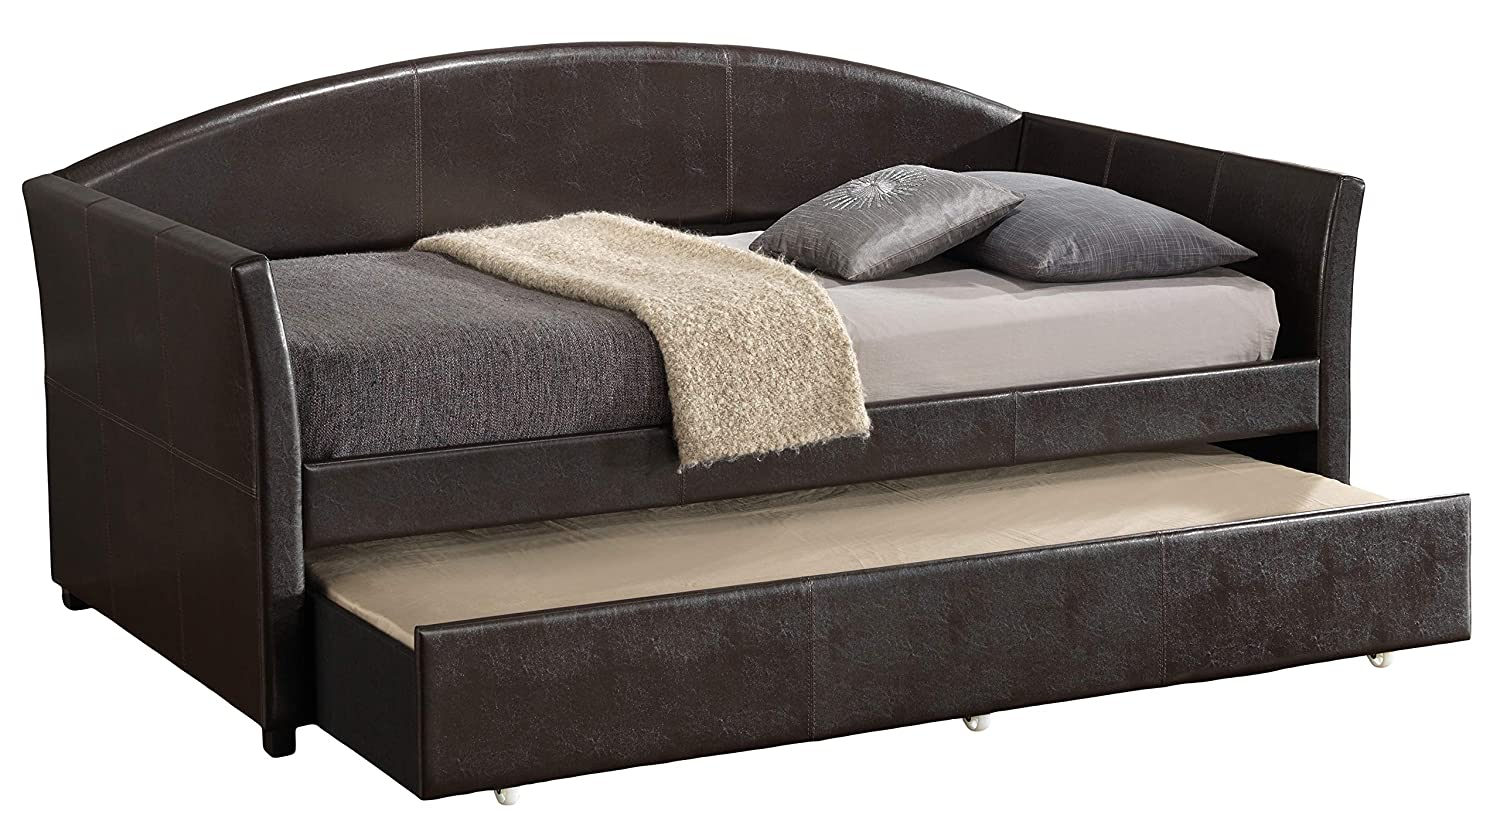 Amazon.com: Gloria Muebles g2579-db Day cama, Capuchino, 3 ...